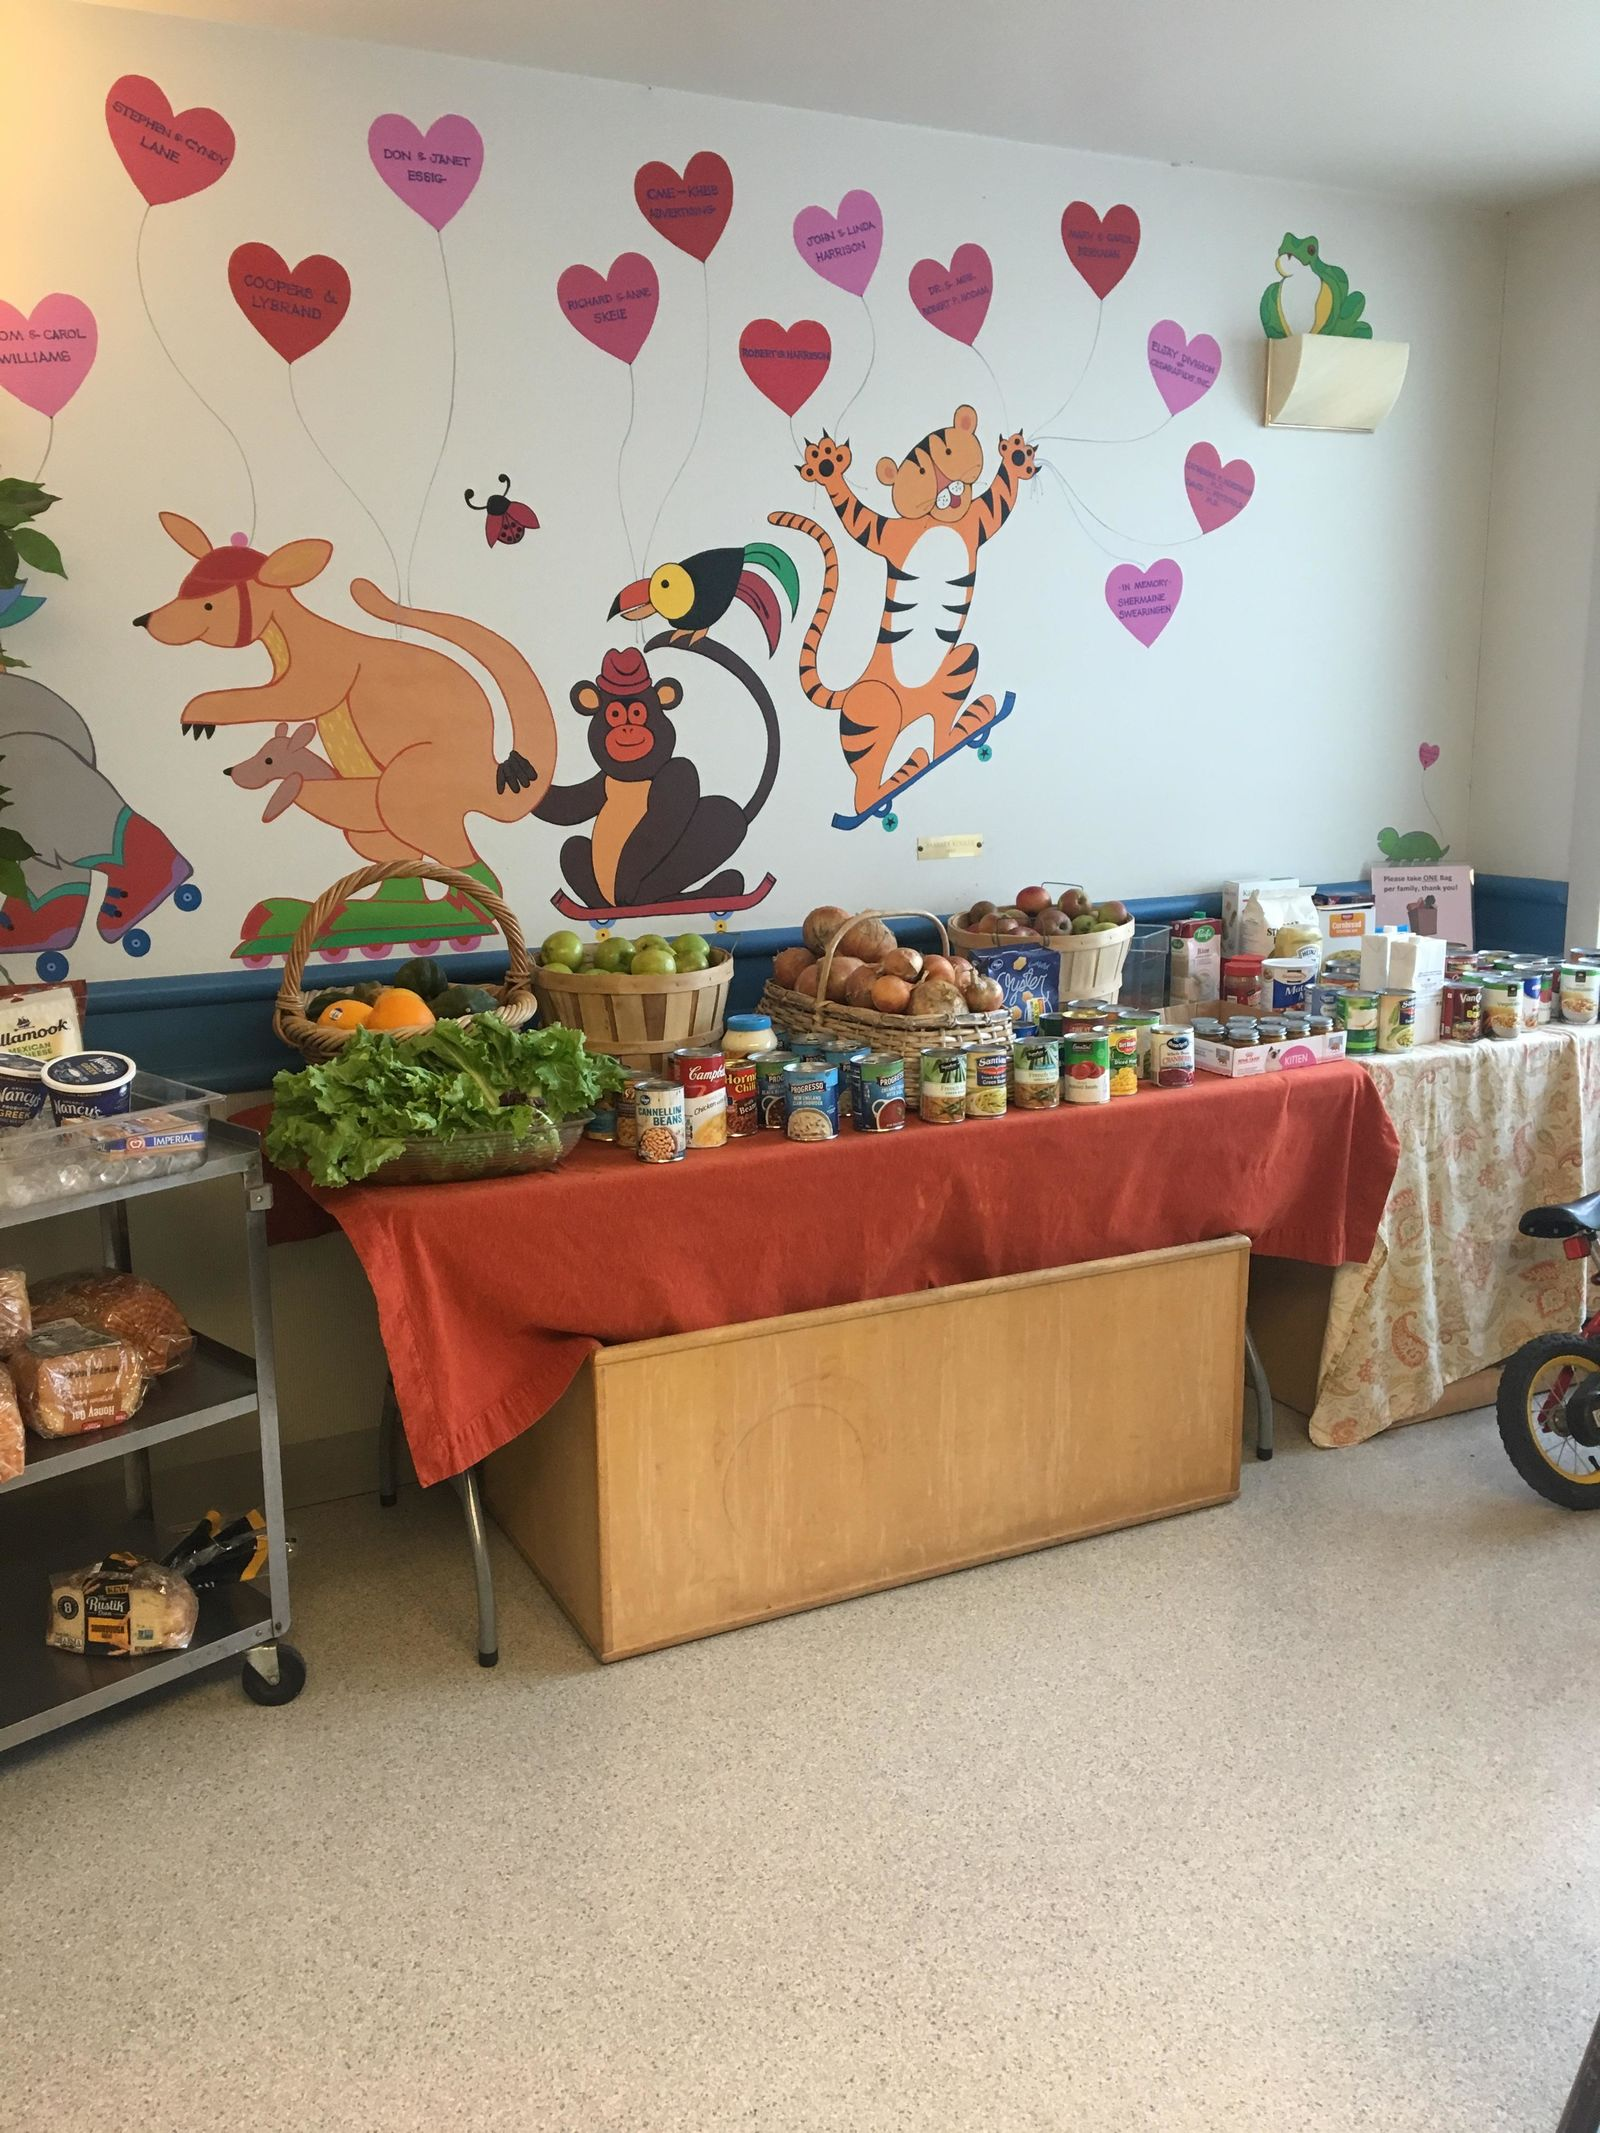 "<p>""Our goal is to prevent the need for foster care placement through access to resources and education,"" said Kristen Bartels from Relief Nursery of Eugene. She said another goal is to help families celebrate the holiday season by providing food and gifts. (SBG)</p>"